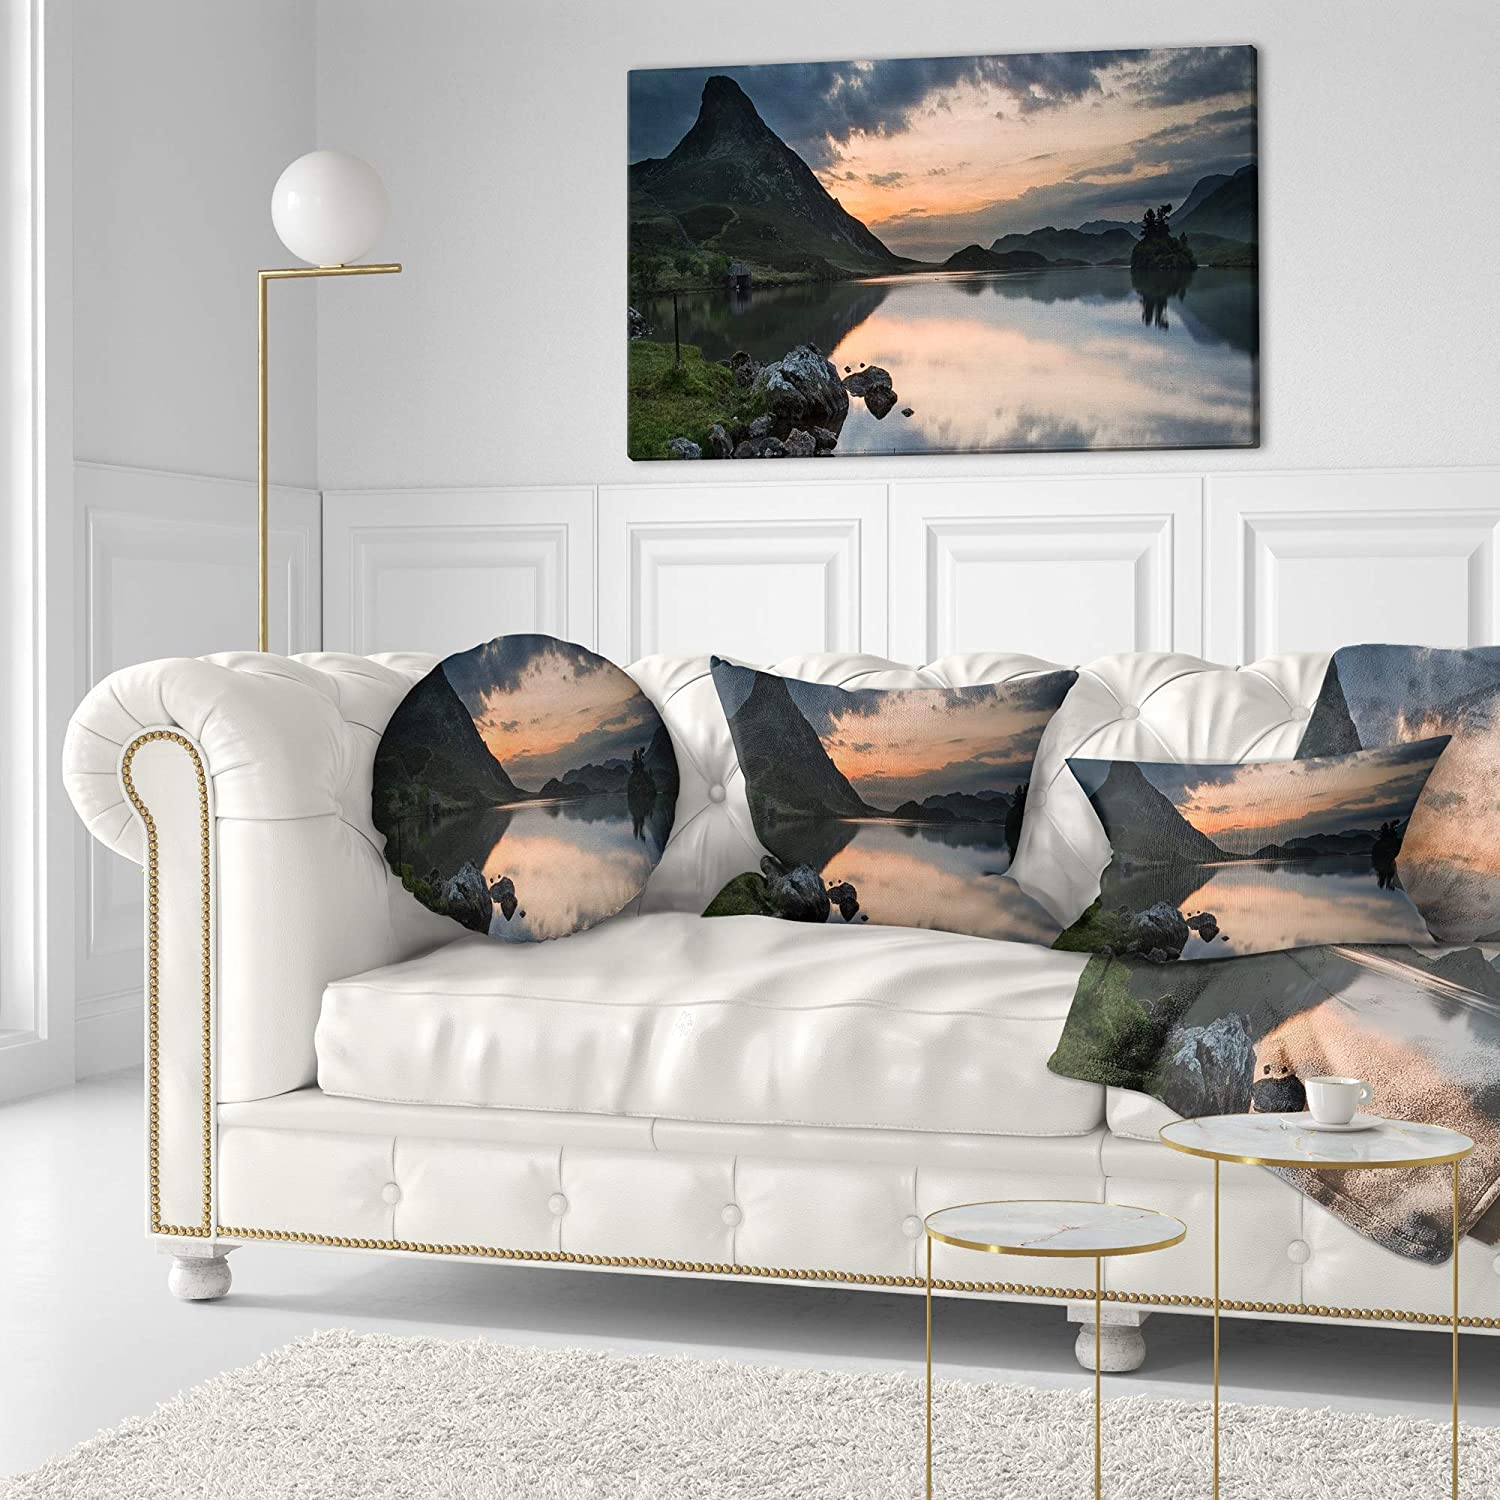 Sofa Designart CU14270-20-20-C Stunning Sunrise Over Lake Panorama Landscape Printed Throw Cushion Pillow Cover for Living Room 20 Round